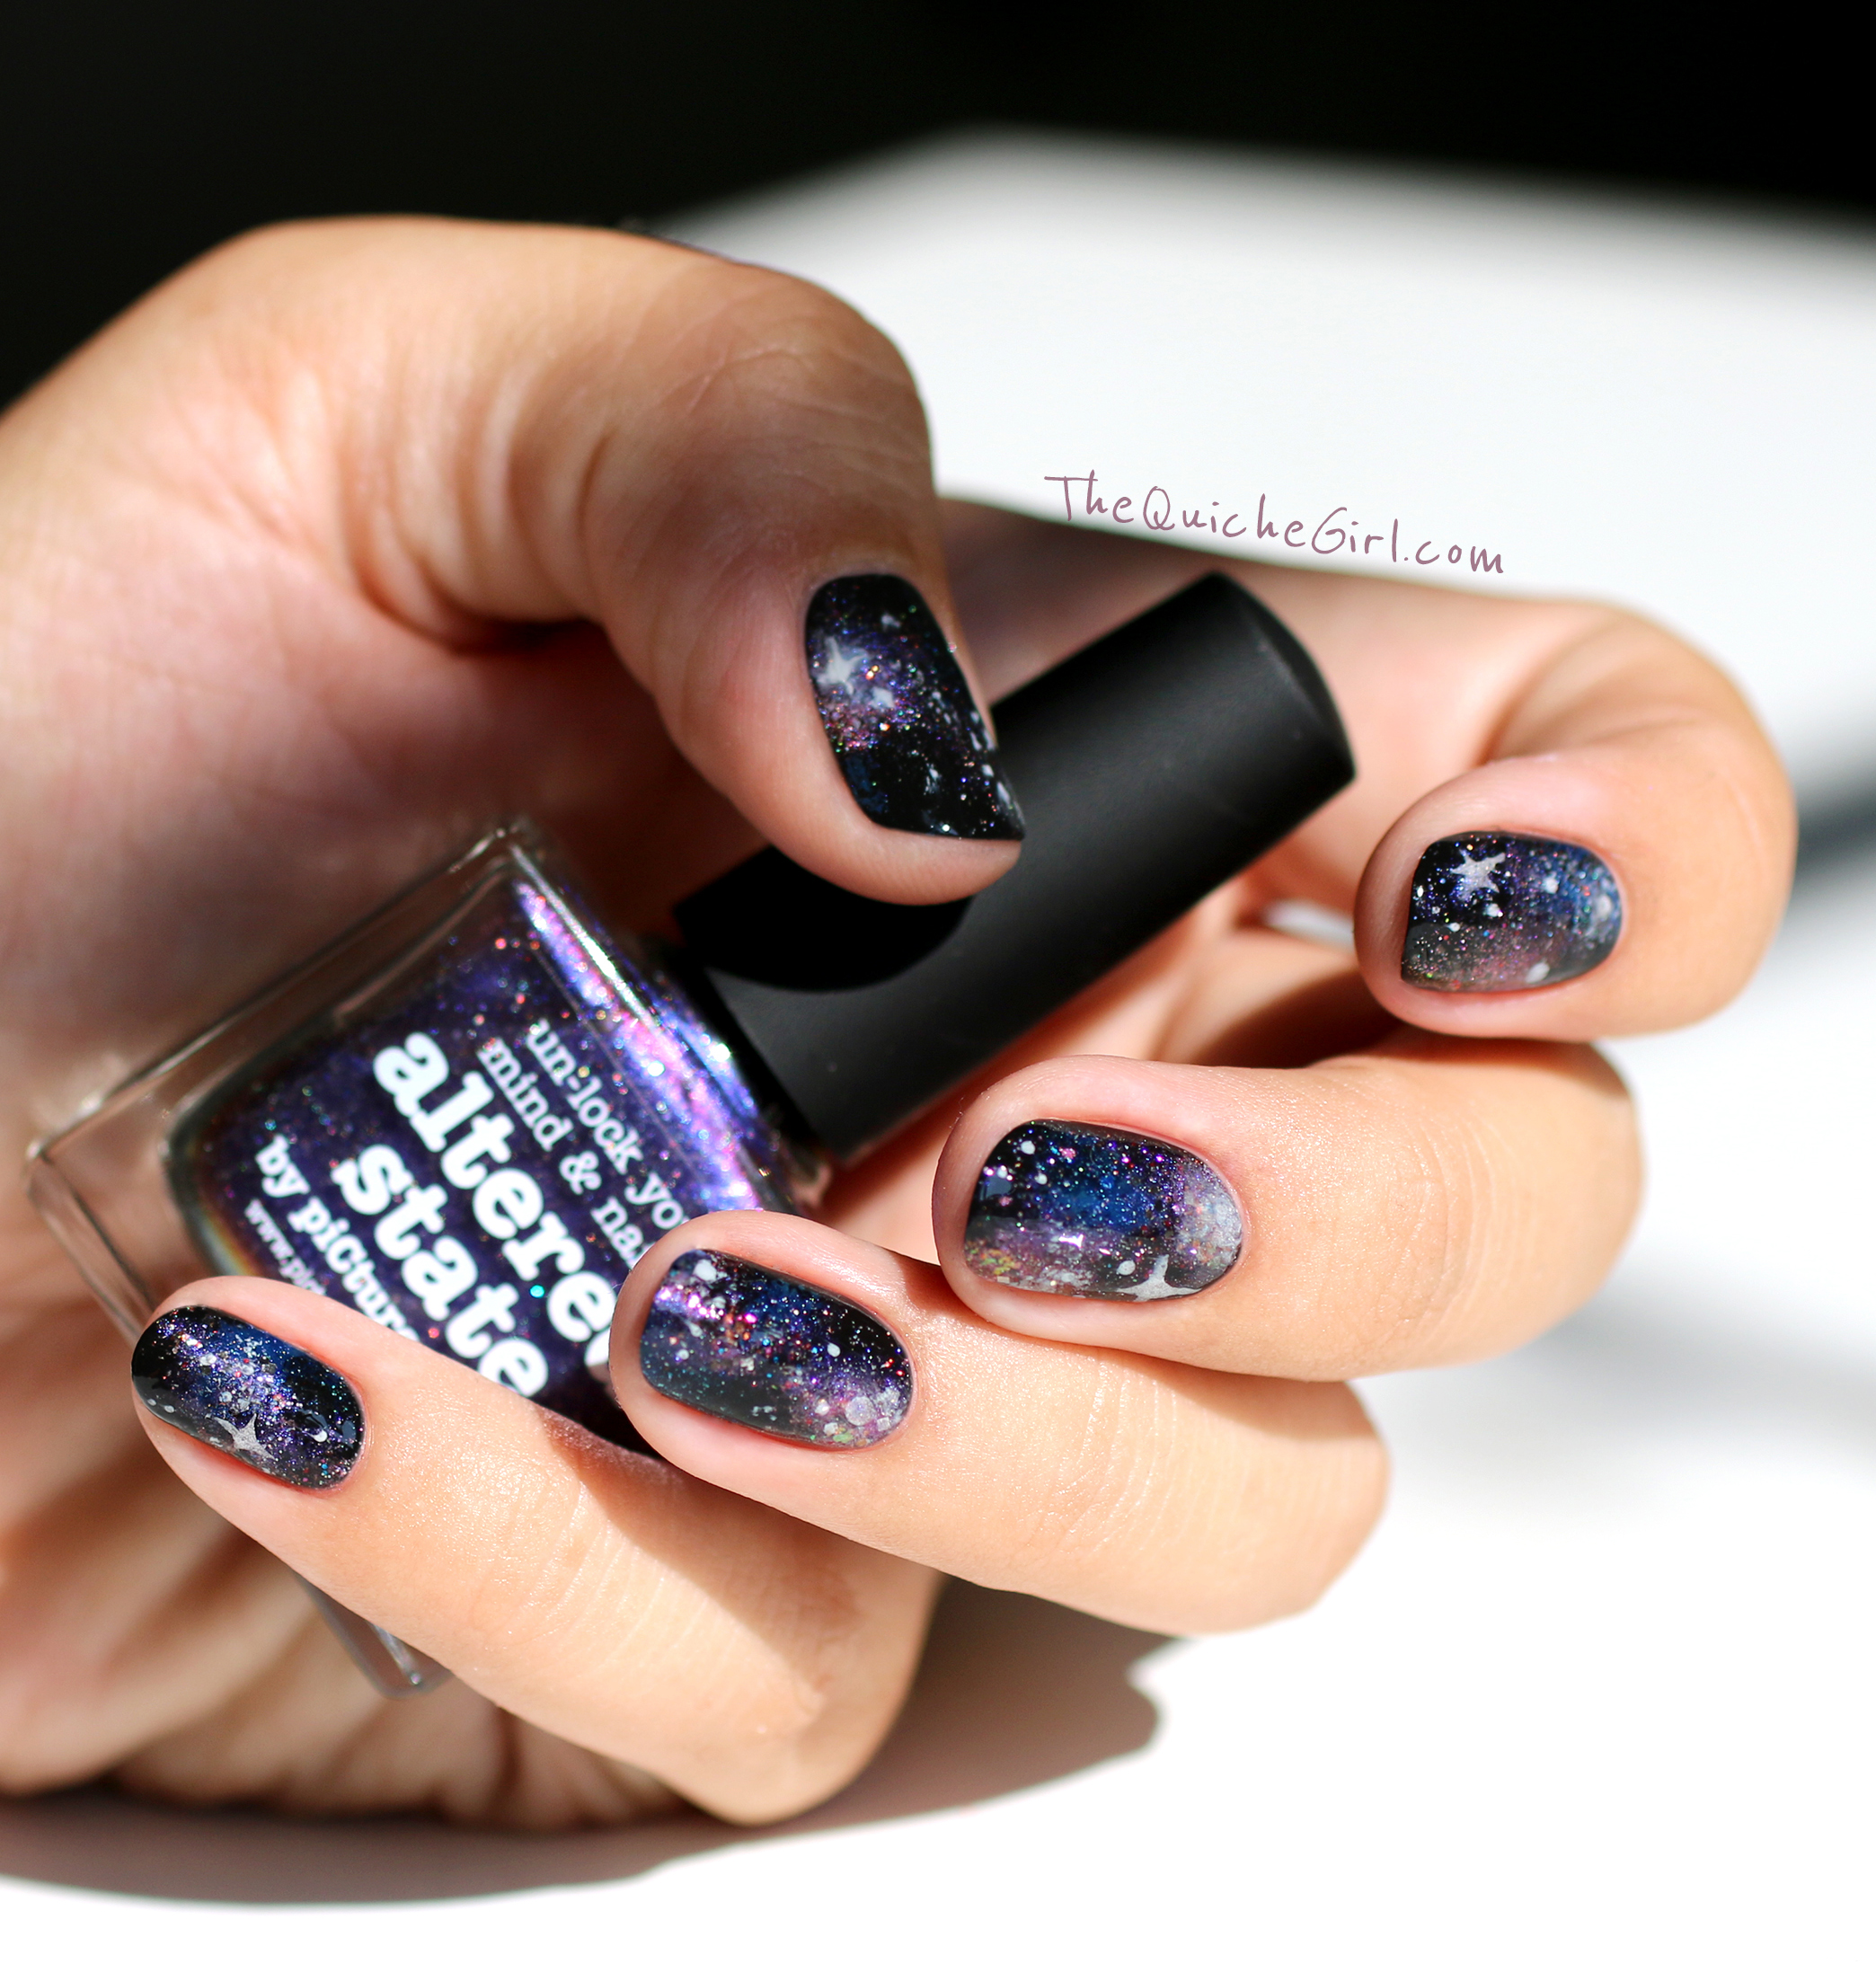 galaxy nails, nailstorming, packaging, altered state, QuicheGirl